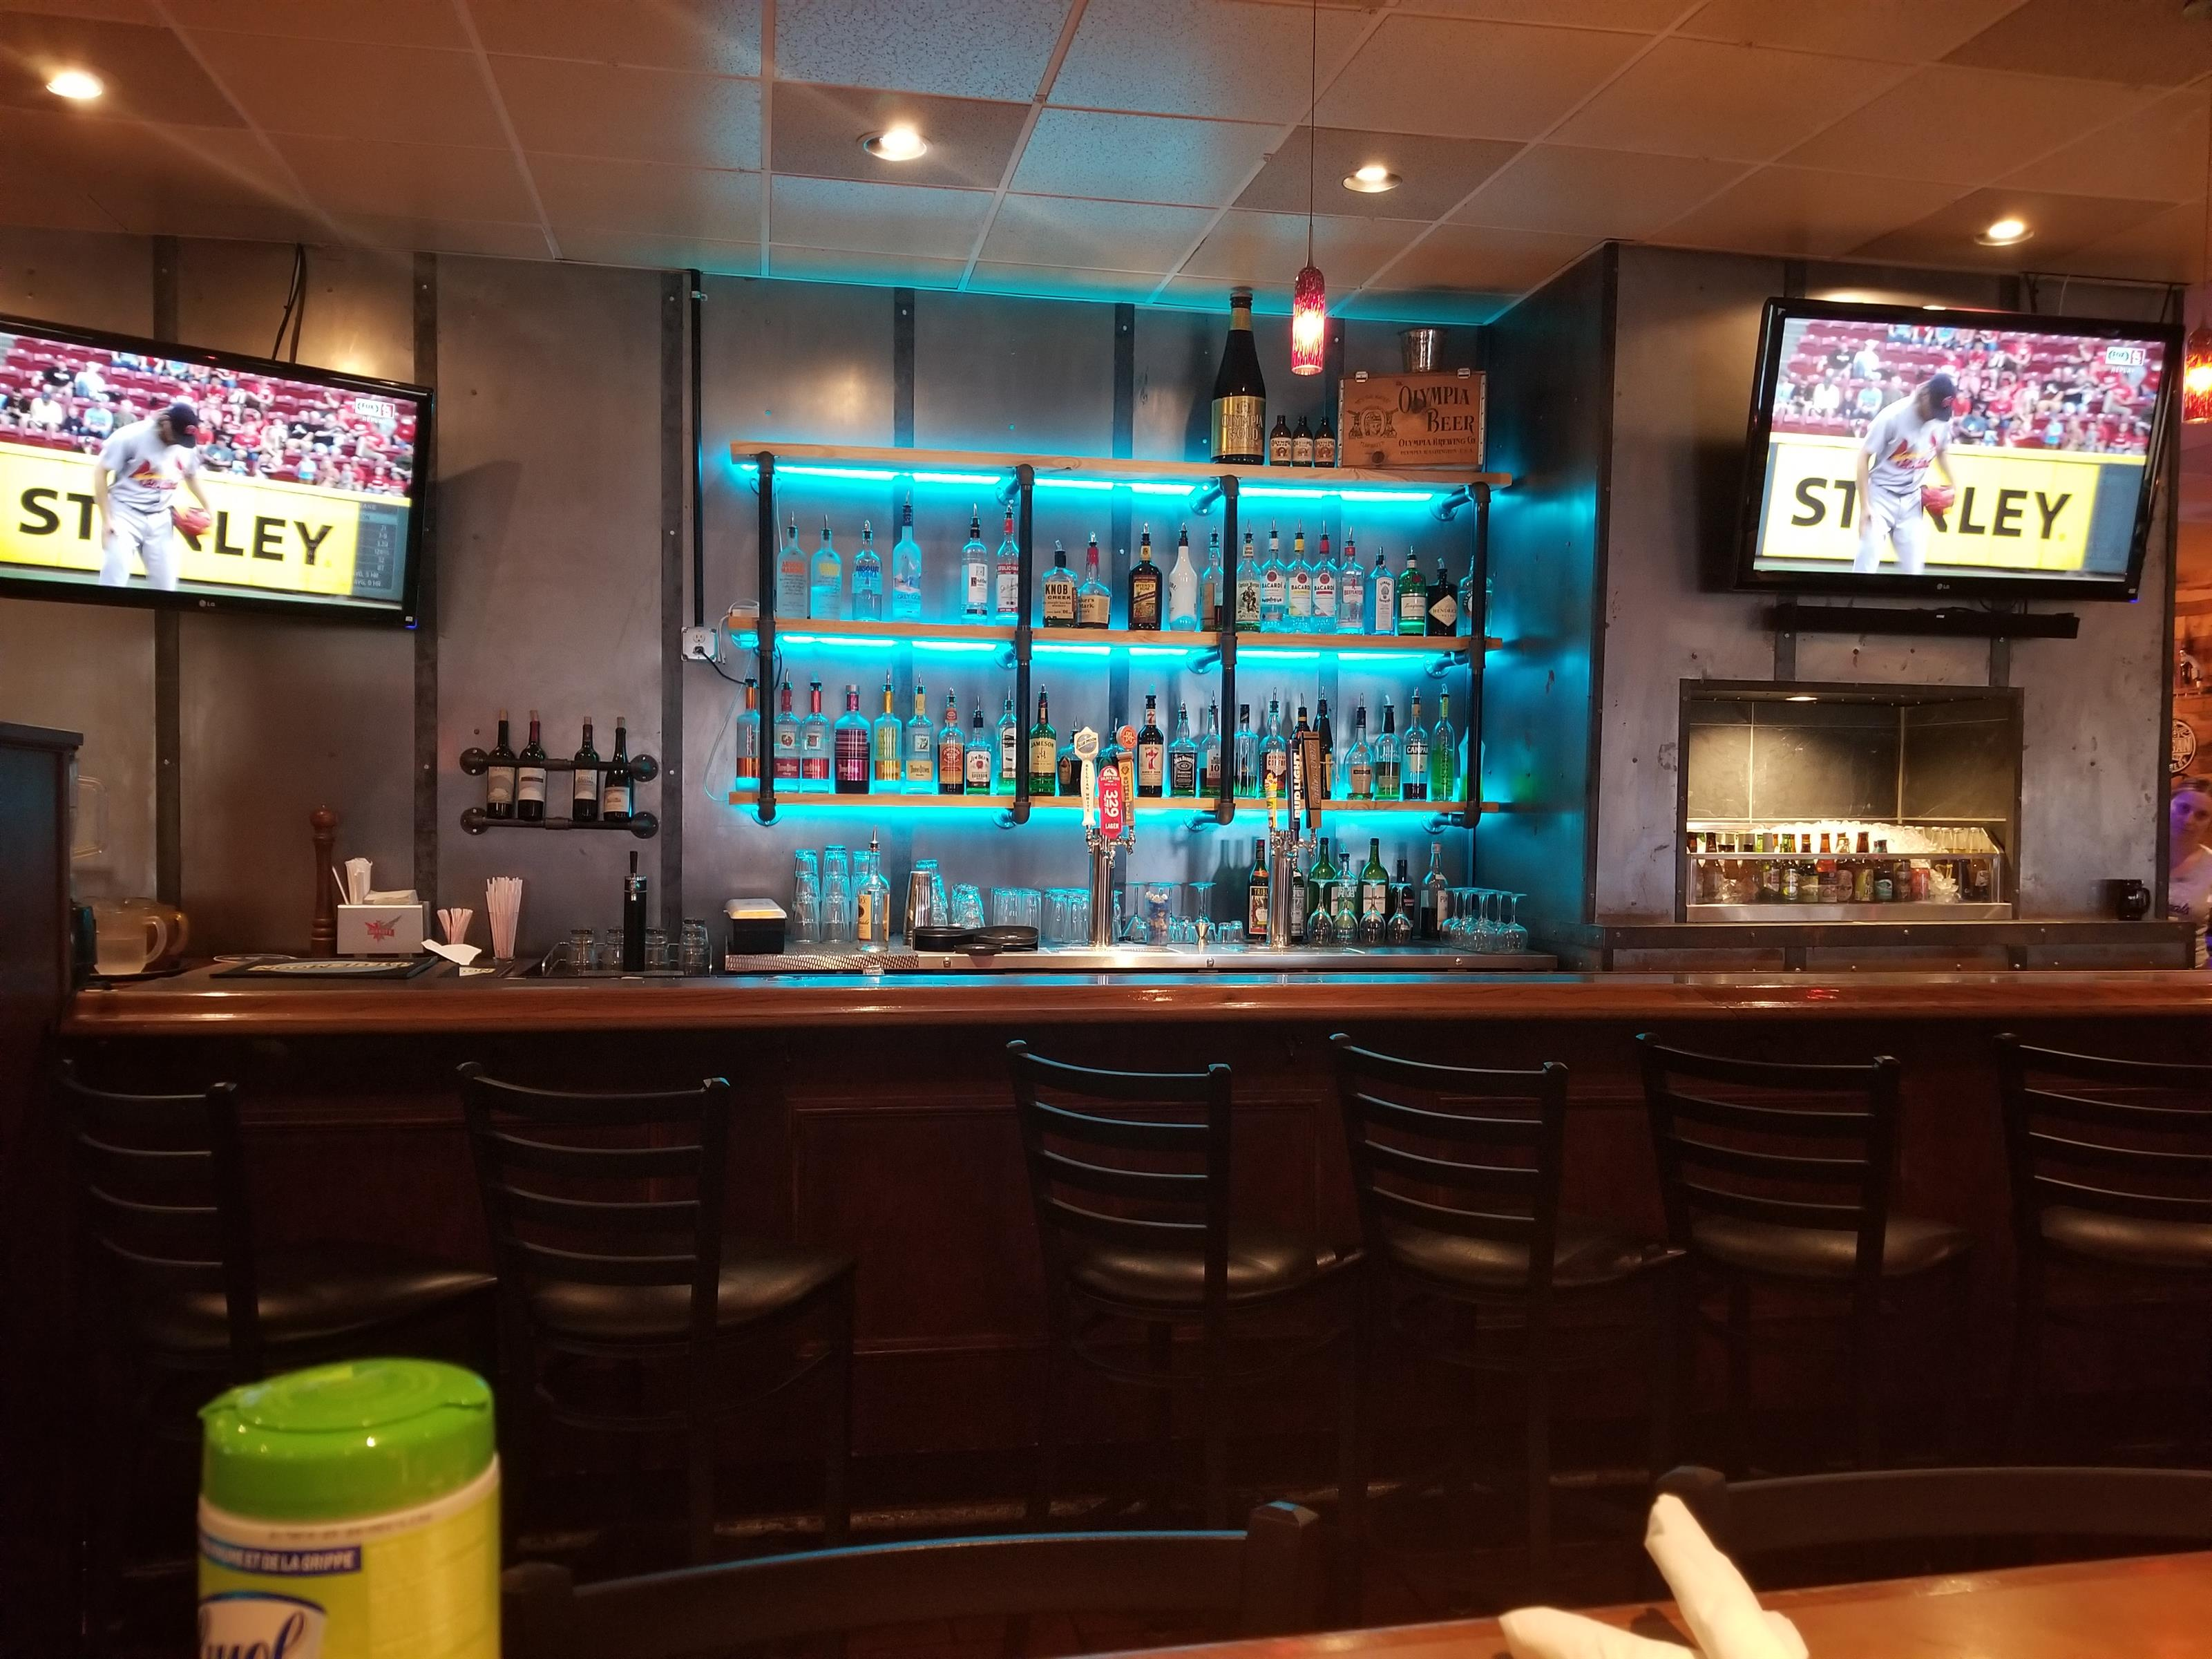 bar area with various drinks and television screens